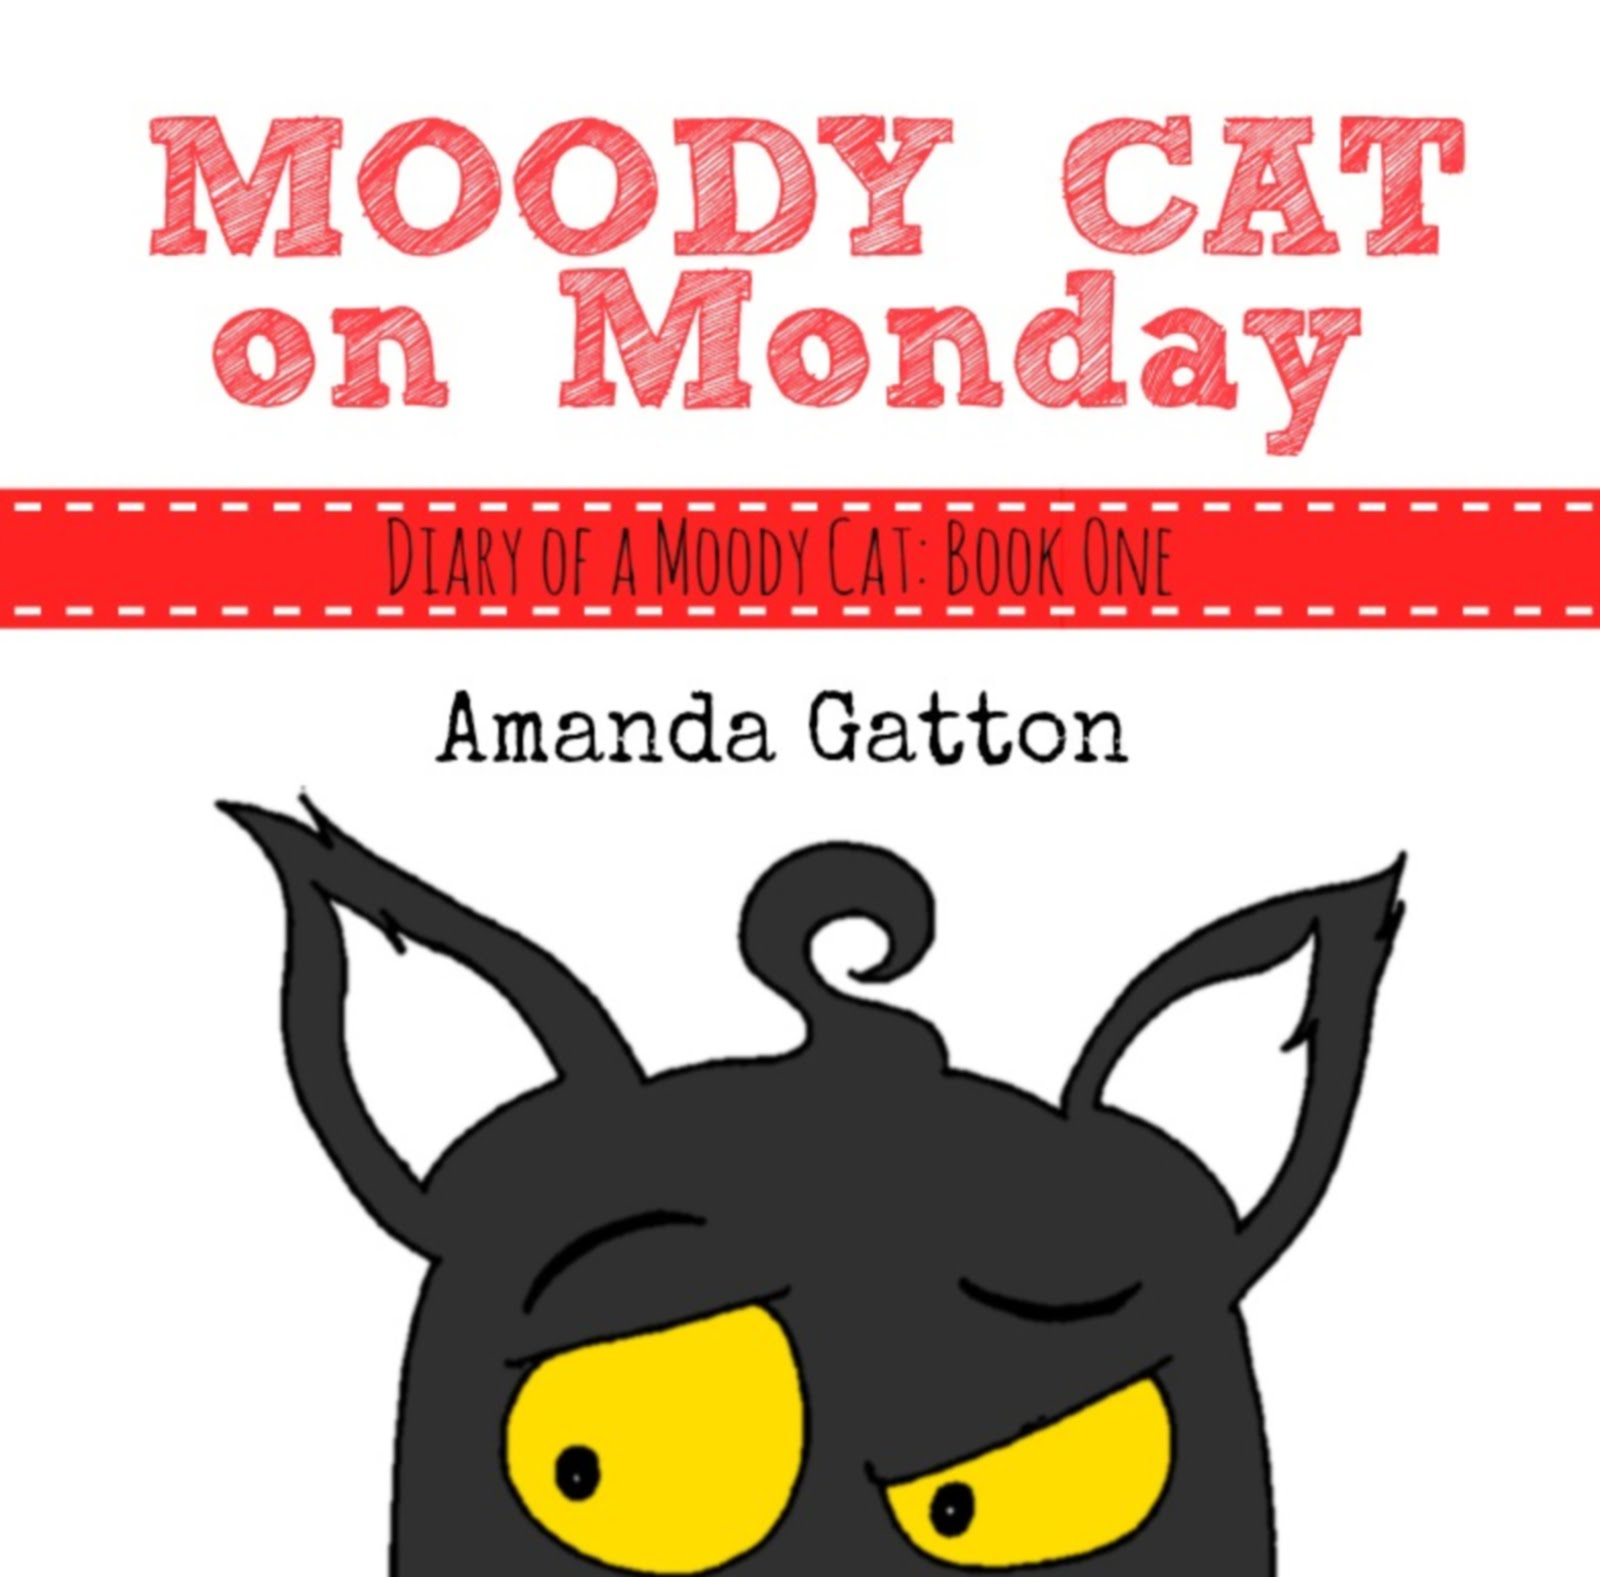 Moody Cat on Monday